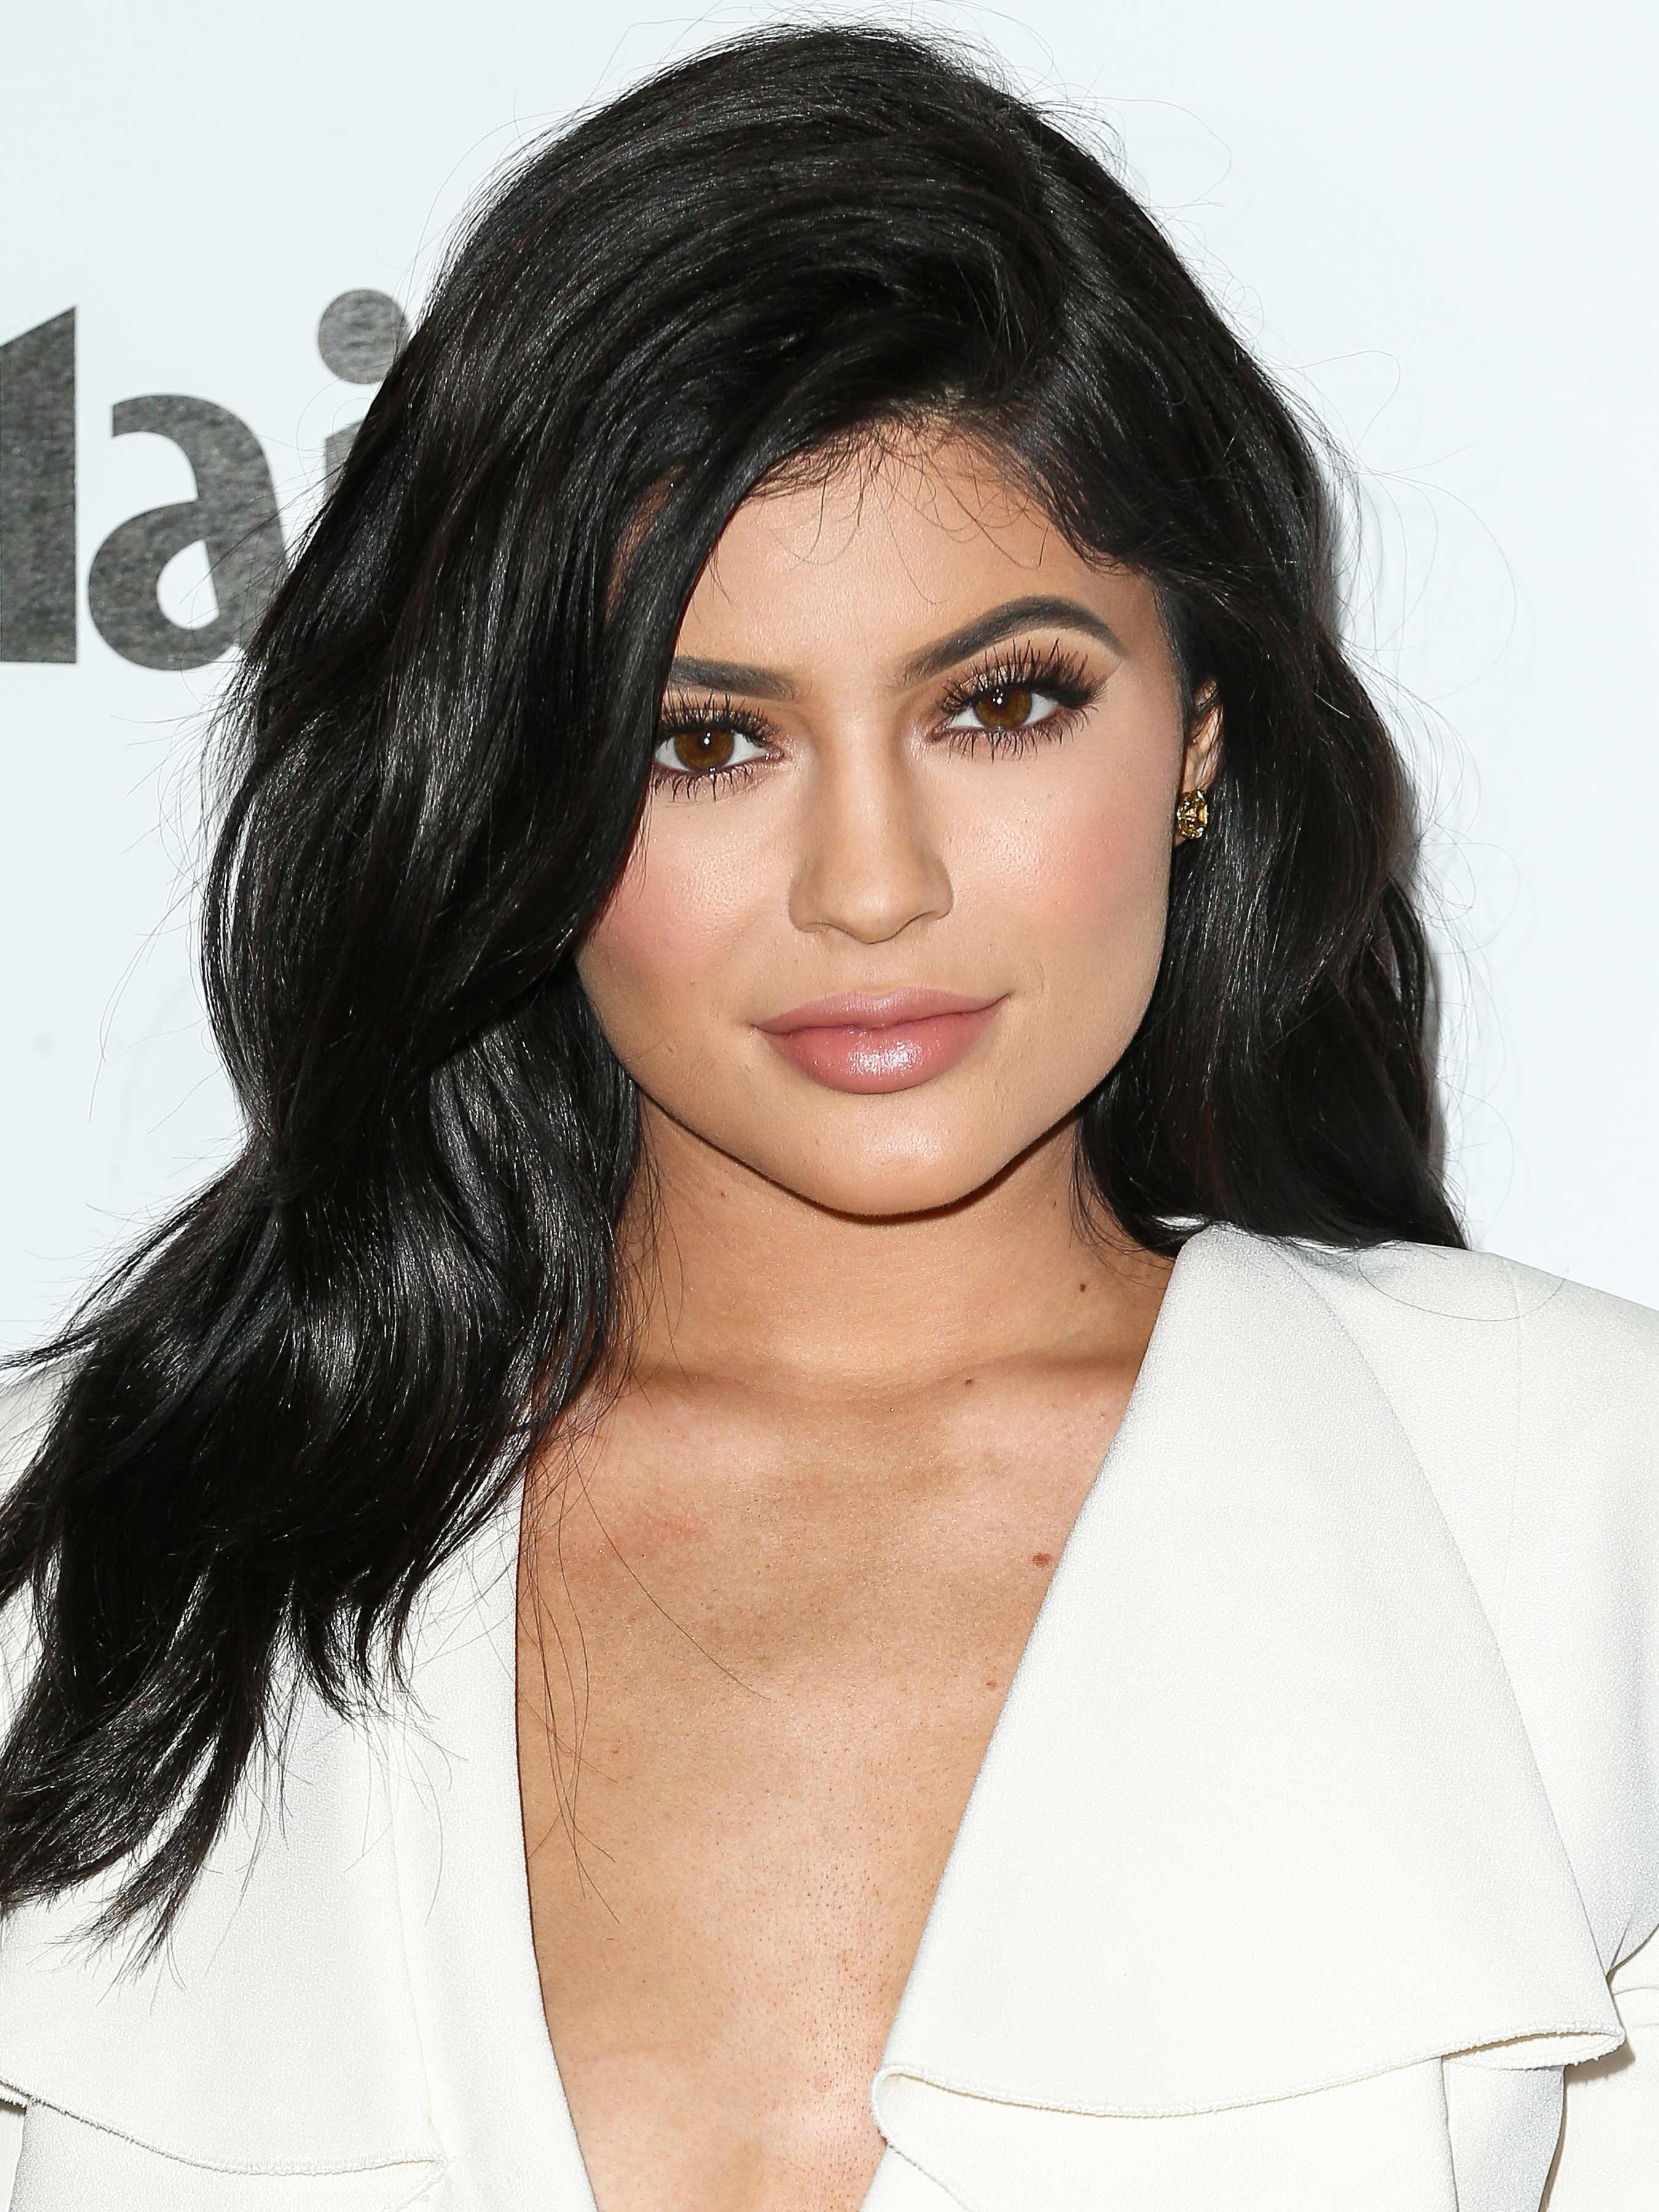 Kylie Jenner S Changing Style From 2002 To Now 60 Outfit